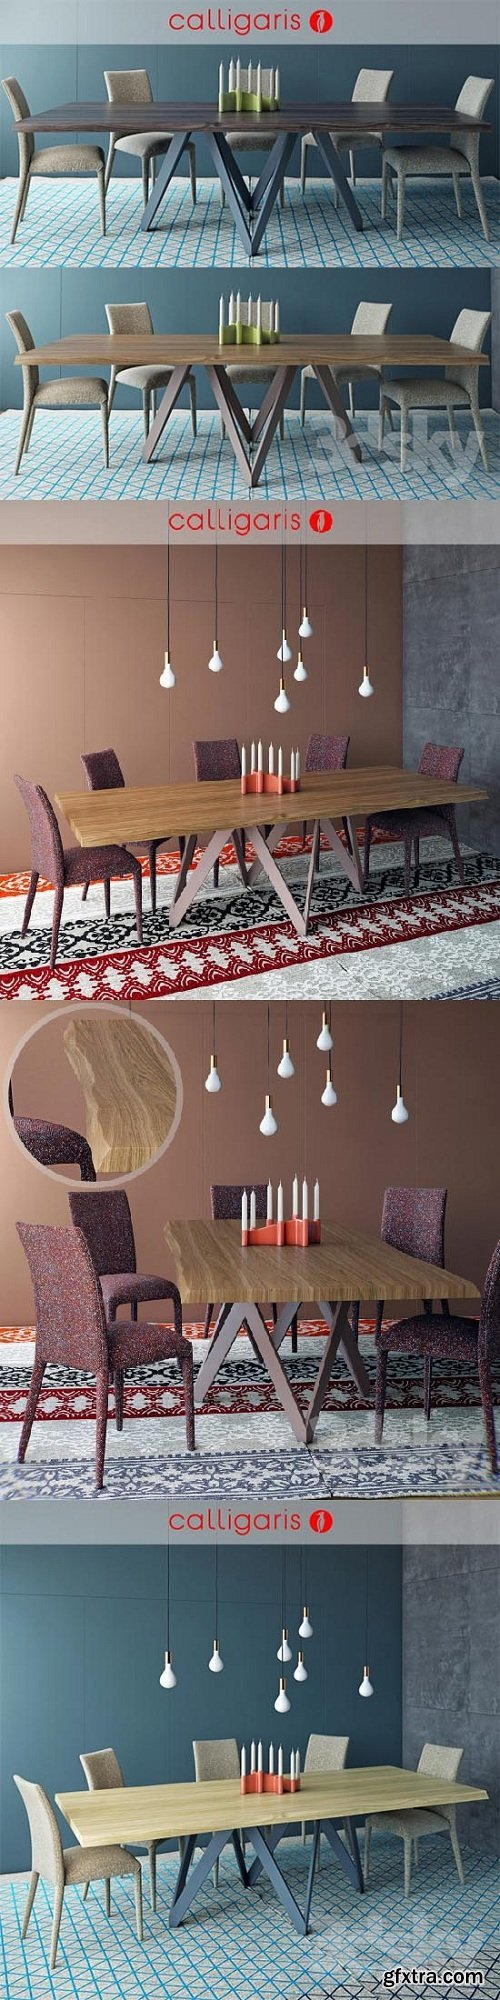 Calligaris table CARTESIO Table AN?IS Chair